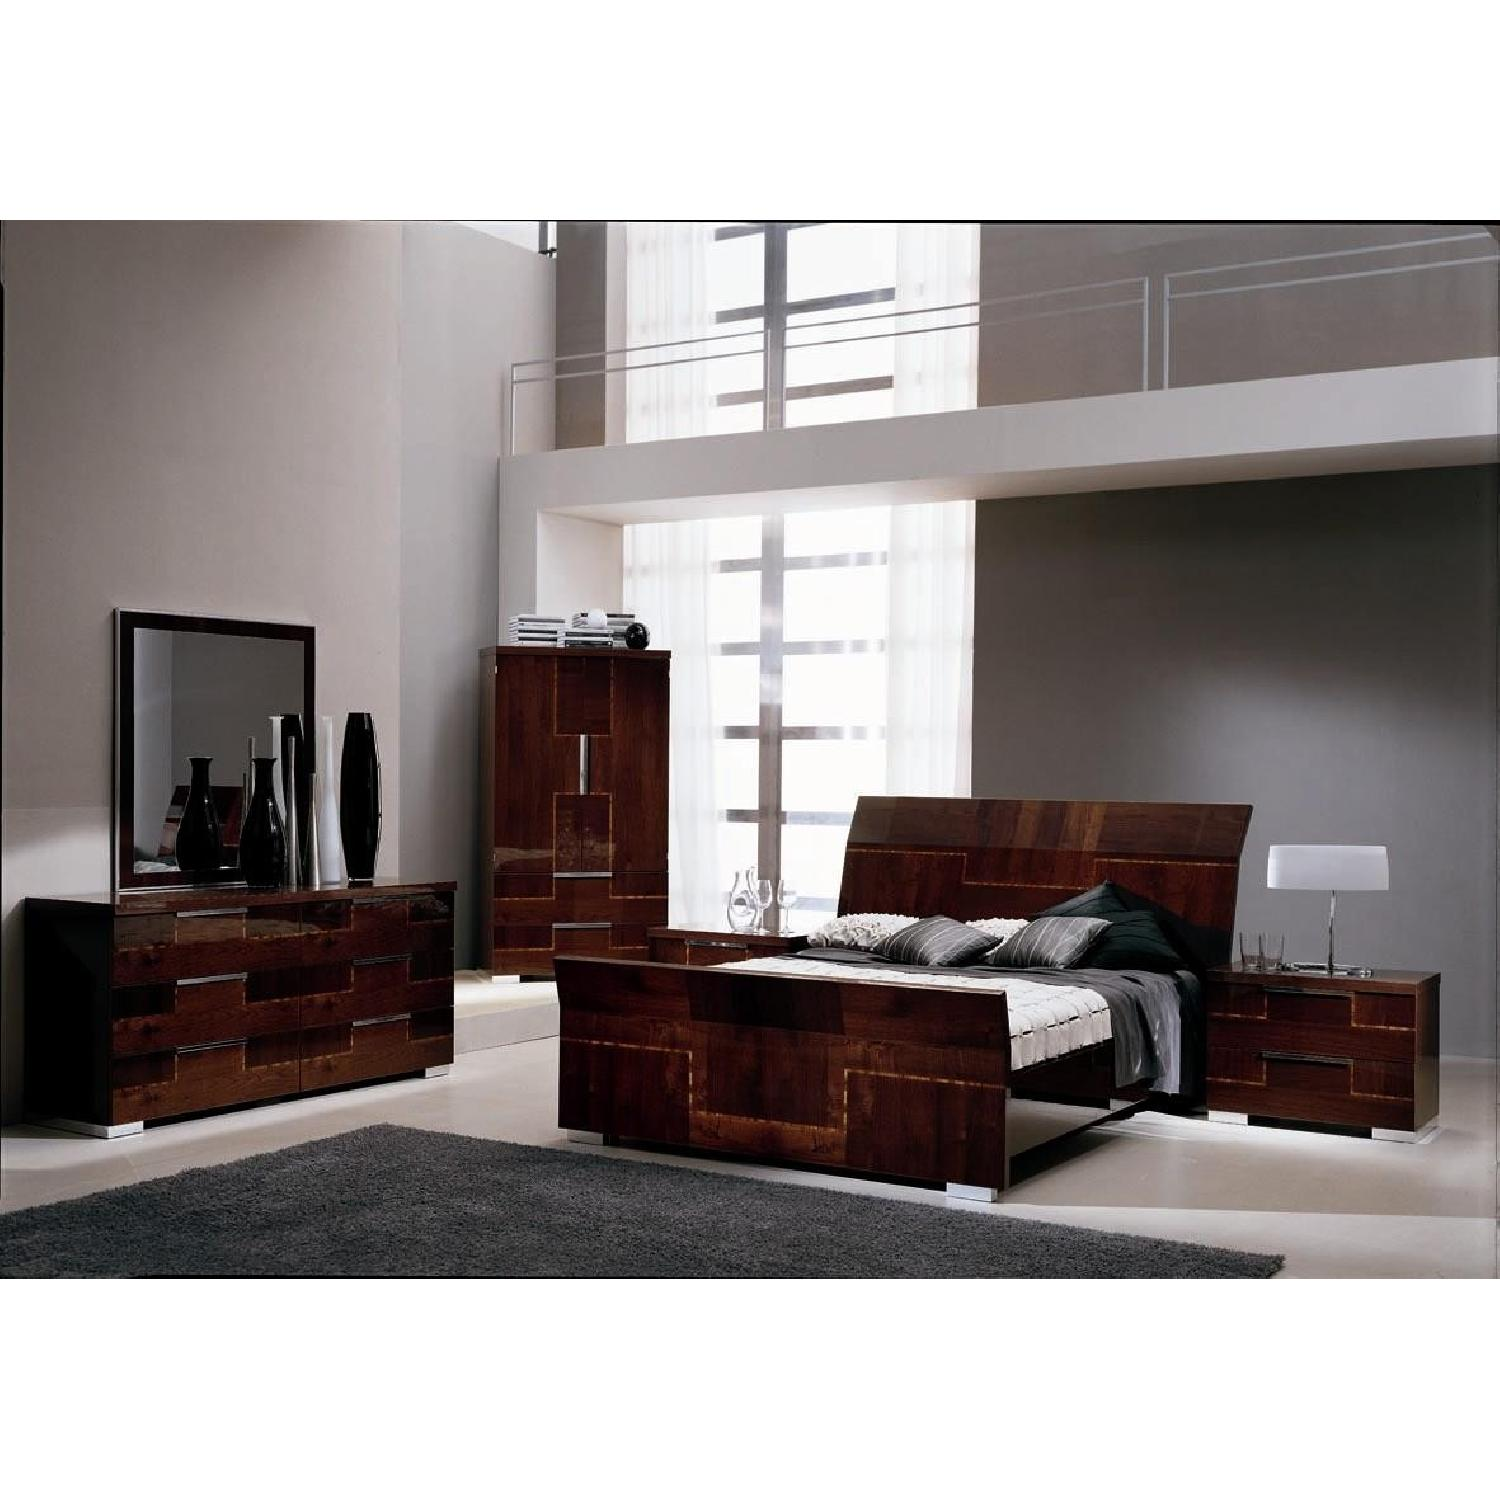 Alf King Low Profile Sleigh Bed + Dresser w/ Mirror + 2 Nighstands - image-4